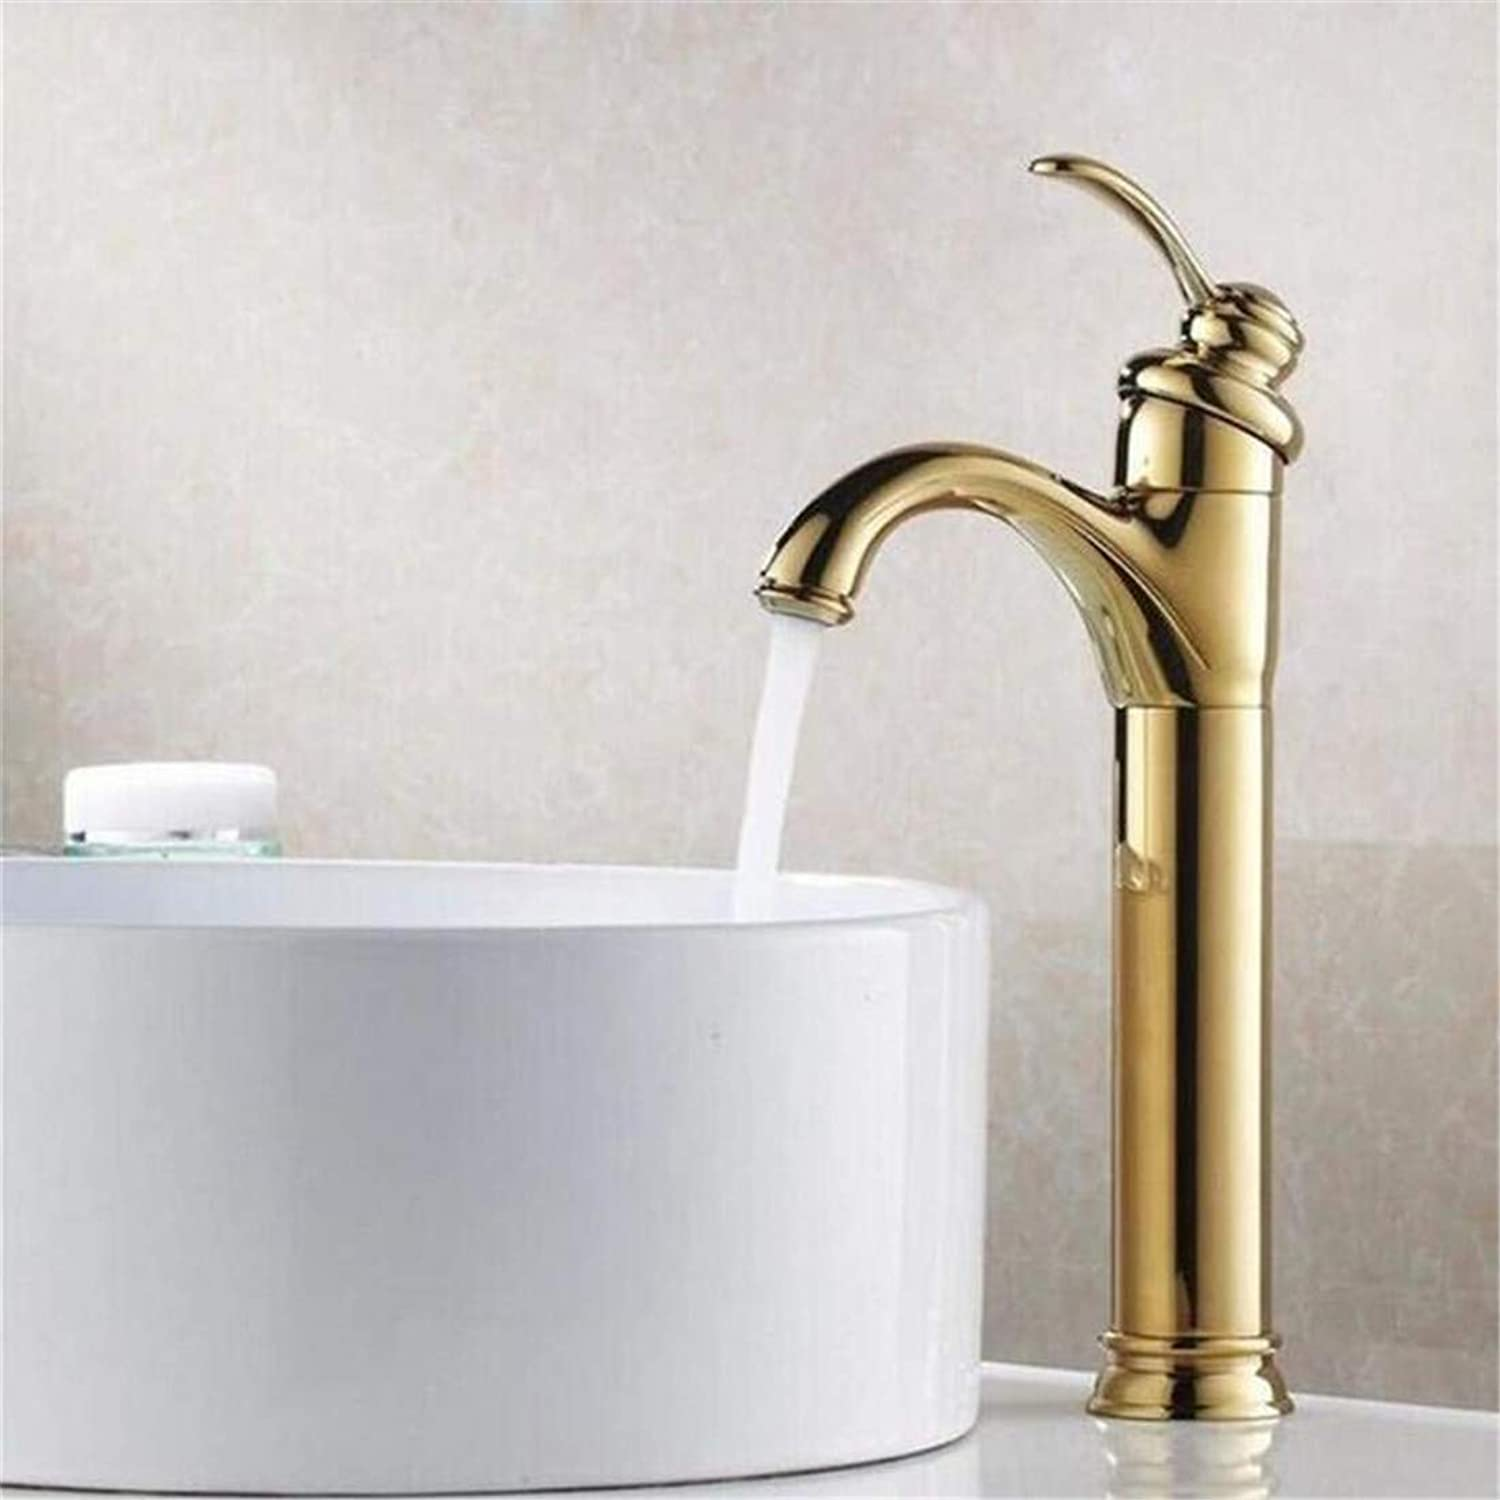 Retro Tap Modern Luxury Vintage Platingbathroom Basin Faucet Oil Brushed Crane Brass Single Handle Deck Mounted Basin Tap